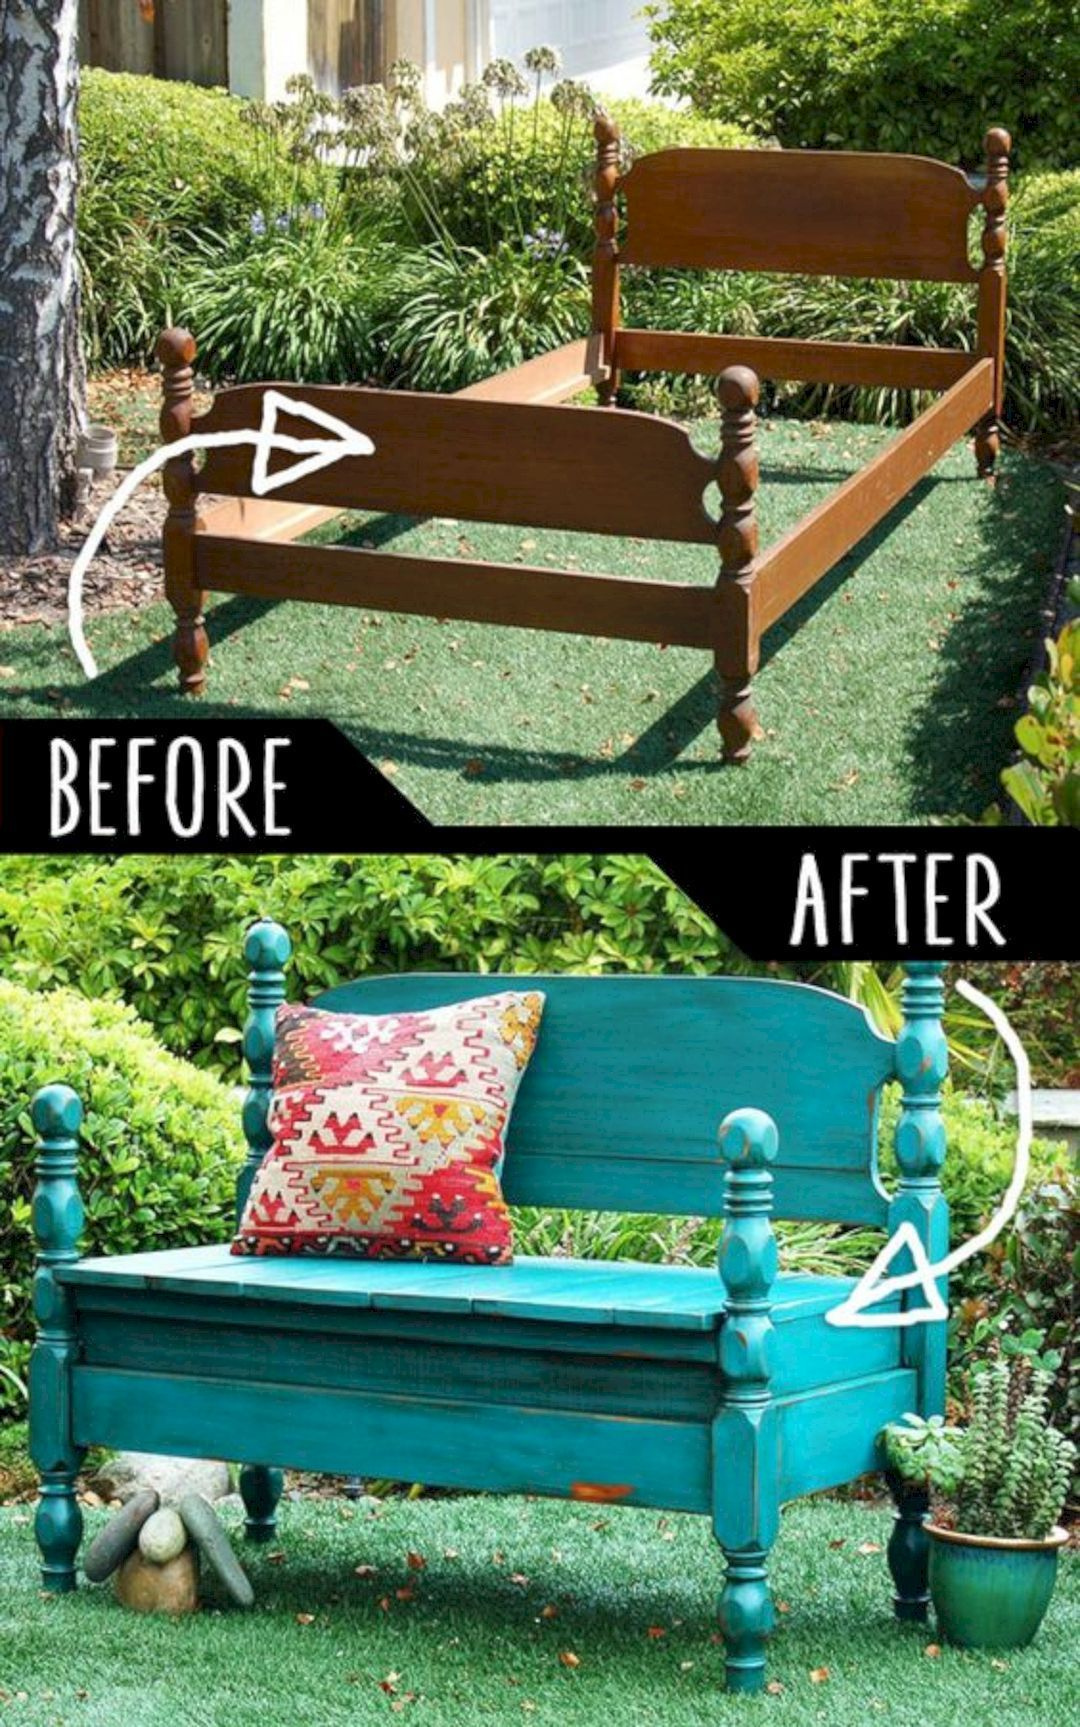 16 Exceptional Recycled Furniture Ideas to Wow Your Home   Pinterest on diy outdoor kitchen, diy remodeled kitchen, diy concrete kitchen, diy decorating kitchen, diy vintage kitchen, diy steel kitchen, diy rustic kitchen, diy modern kitchen, diy halloween kitchen, diy home kitchen, diy art kitchen, diy toys kitchen, diy beach kitchen, diy christmas kitchen, diy wood kitchen, diy white kitchen, diy industrial kitchen, diy upcycled kitchen, diy storage kitchen, diy paint kitchen,